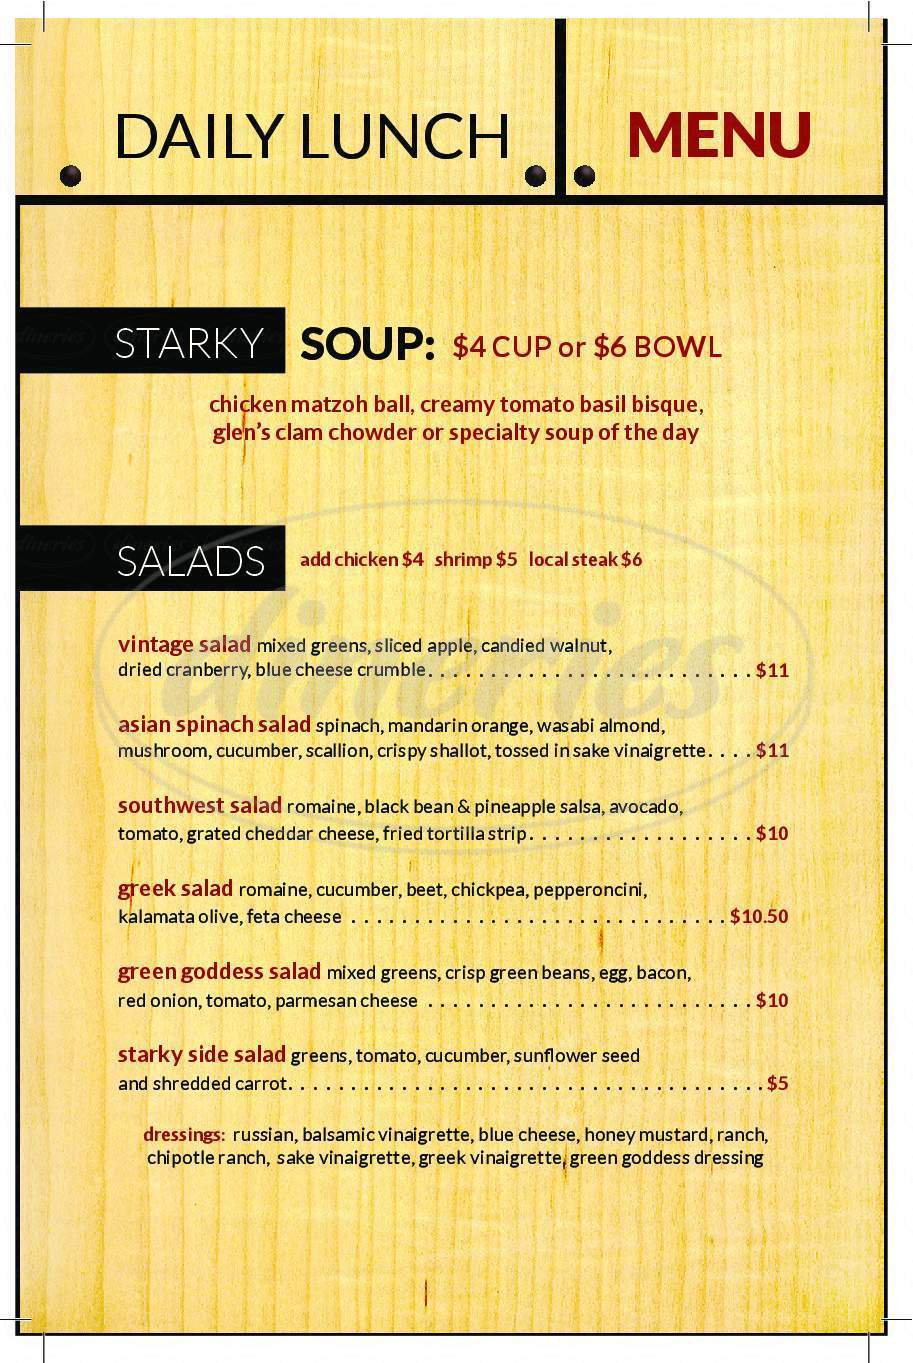 menu for Starky's Authentic Americana